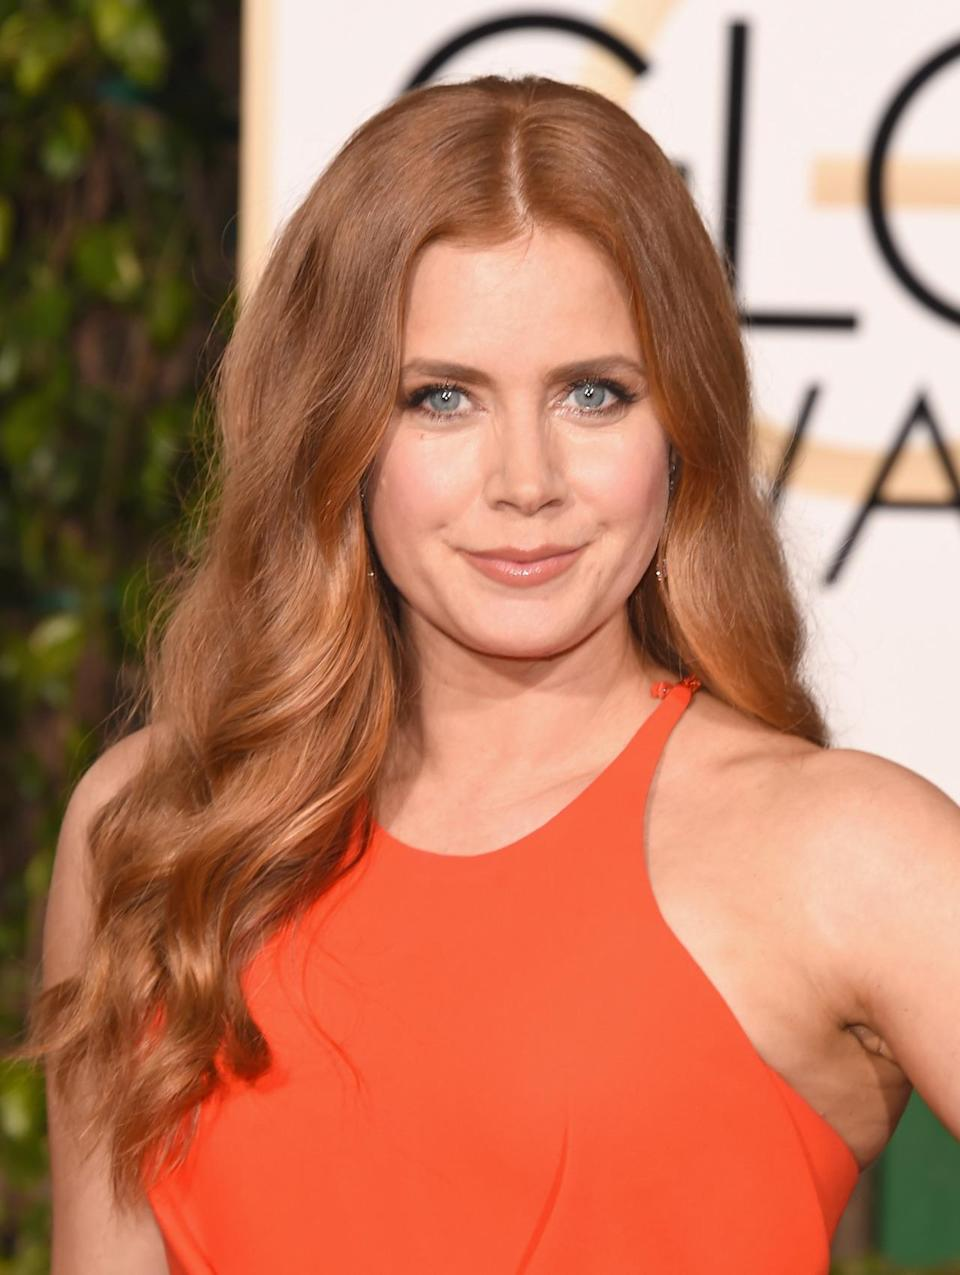 <p>The normally porcelain-skinned actress had a luminous glow about her tonight. Might she had some help from Jergens? <i>(Photo: Getty Images)</i></p>